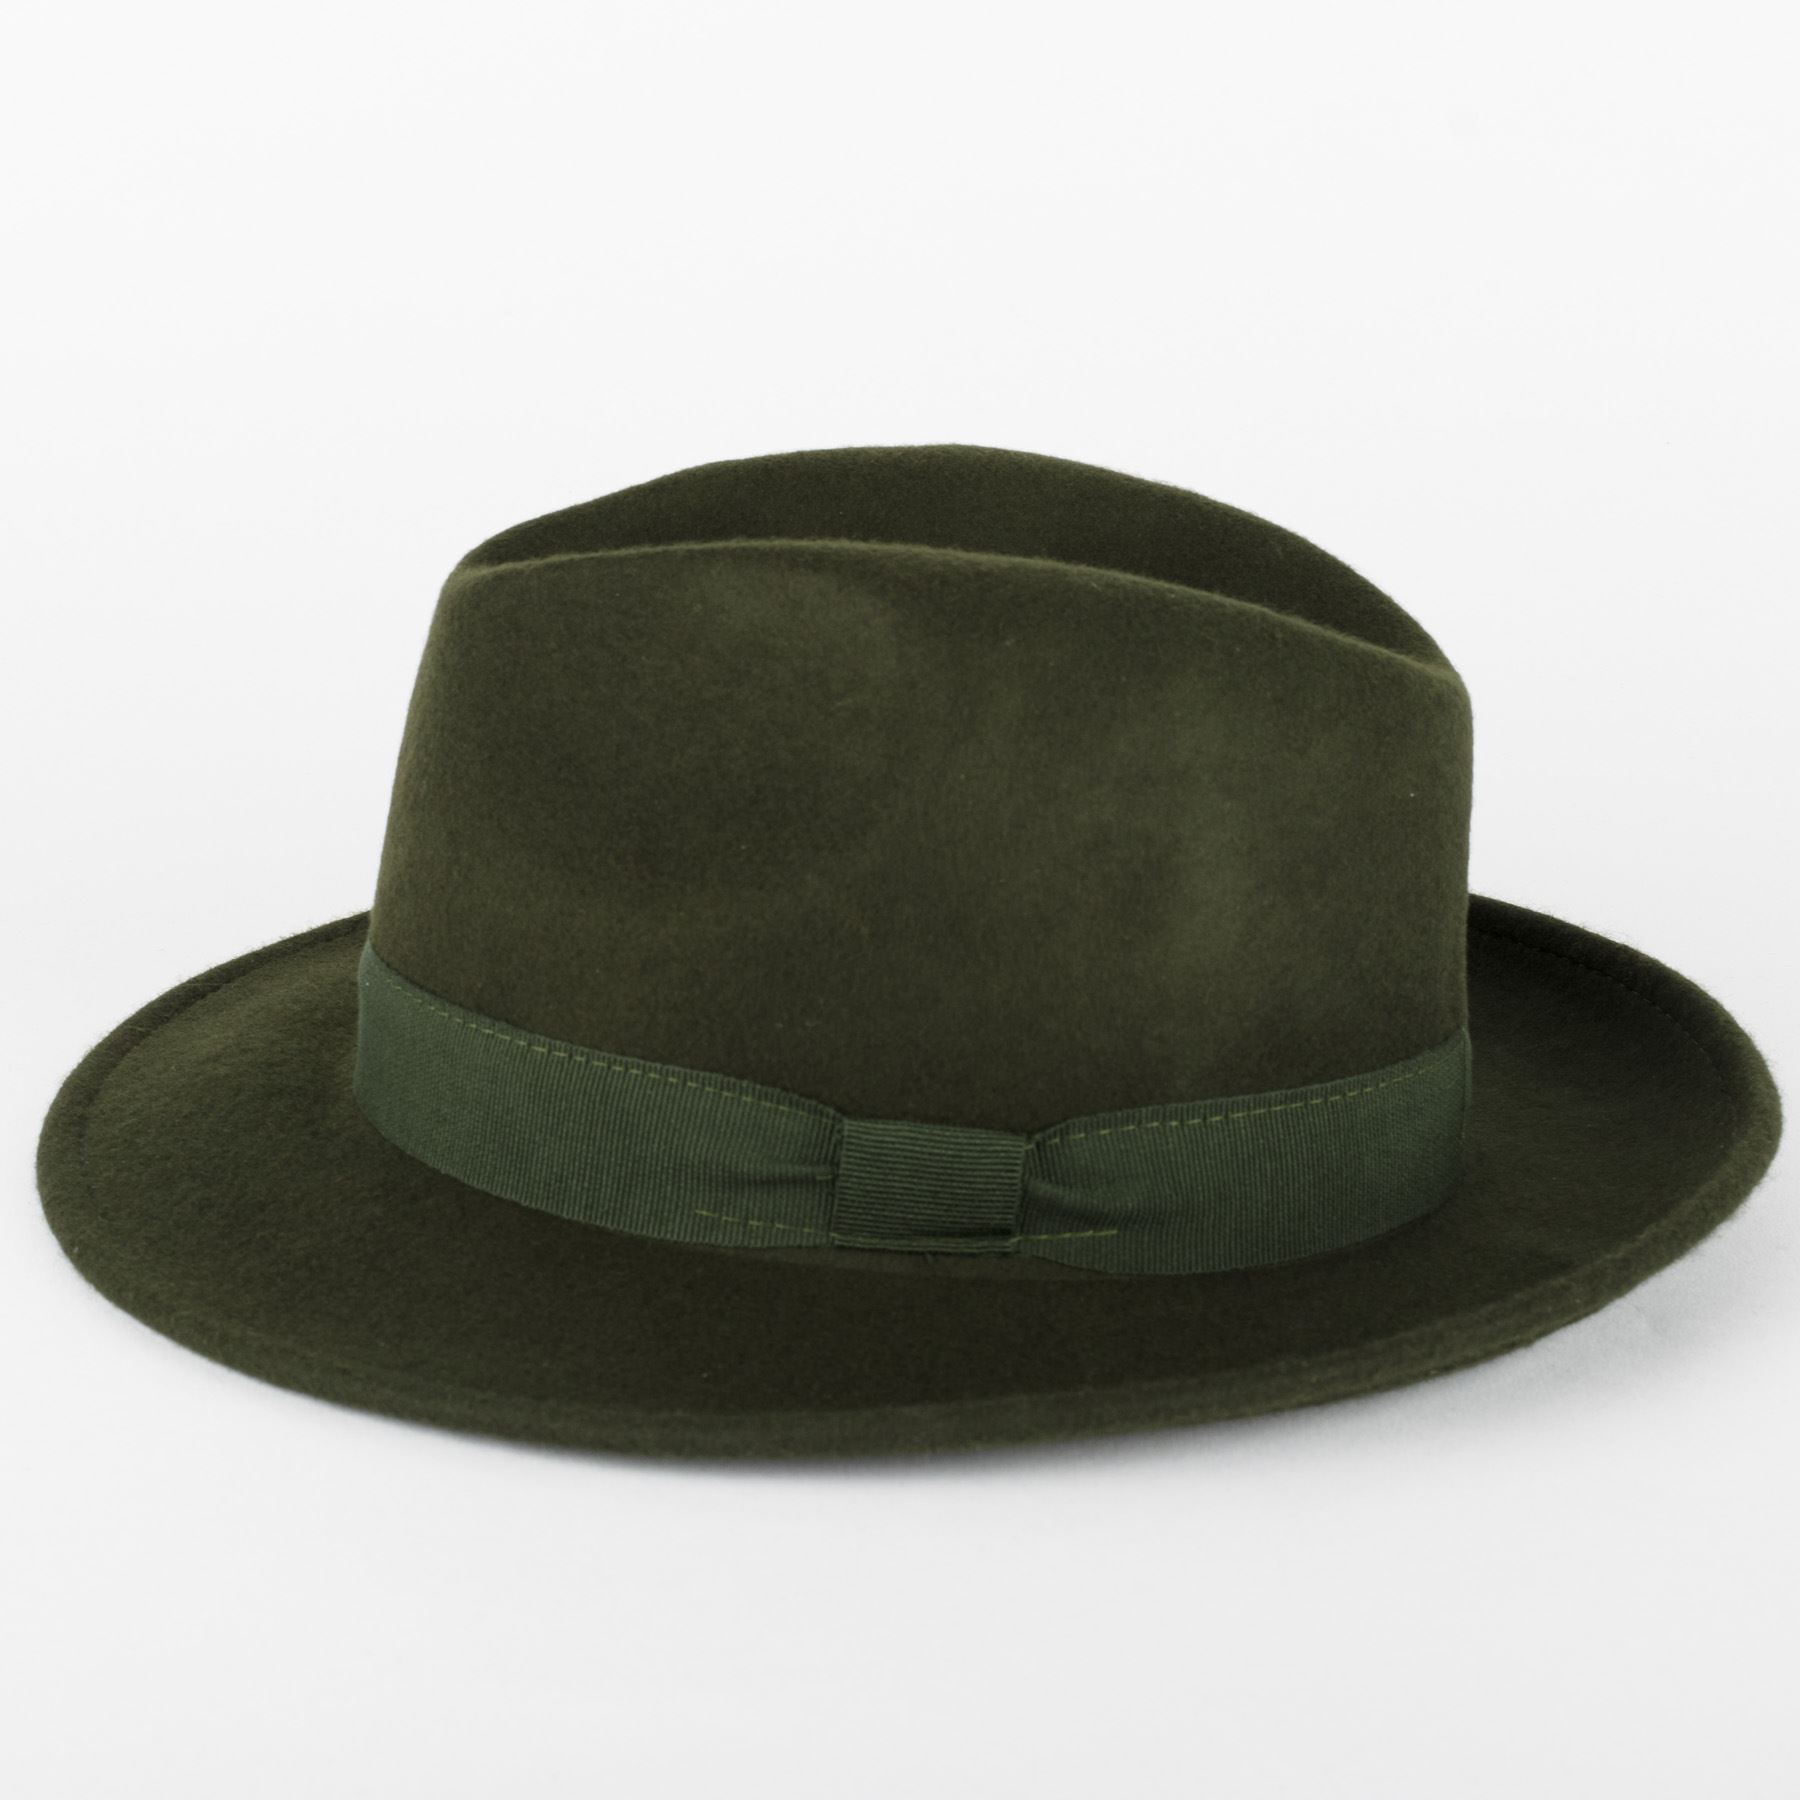 100/% Wool Trilby Fedora Hat Handmade in Italy